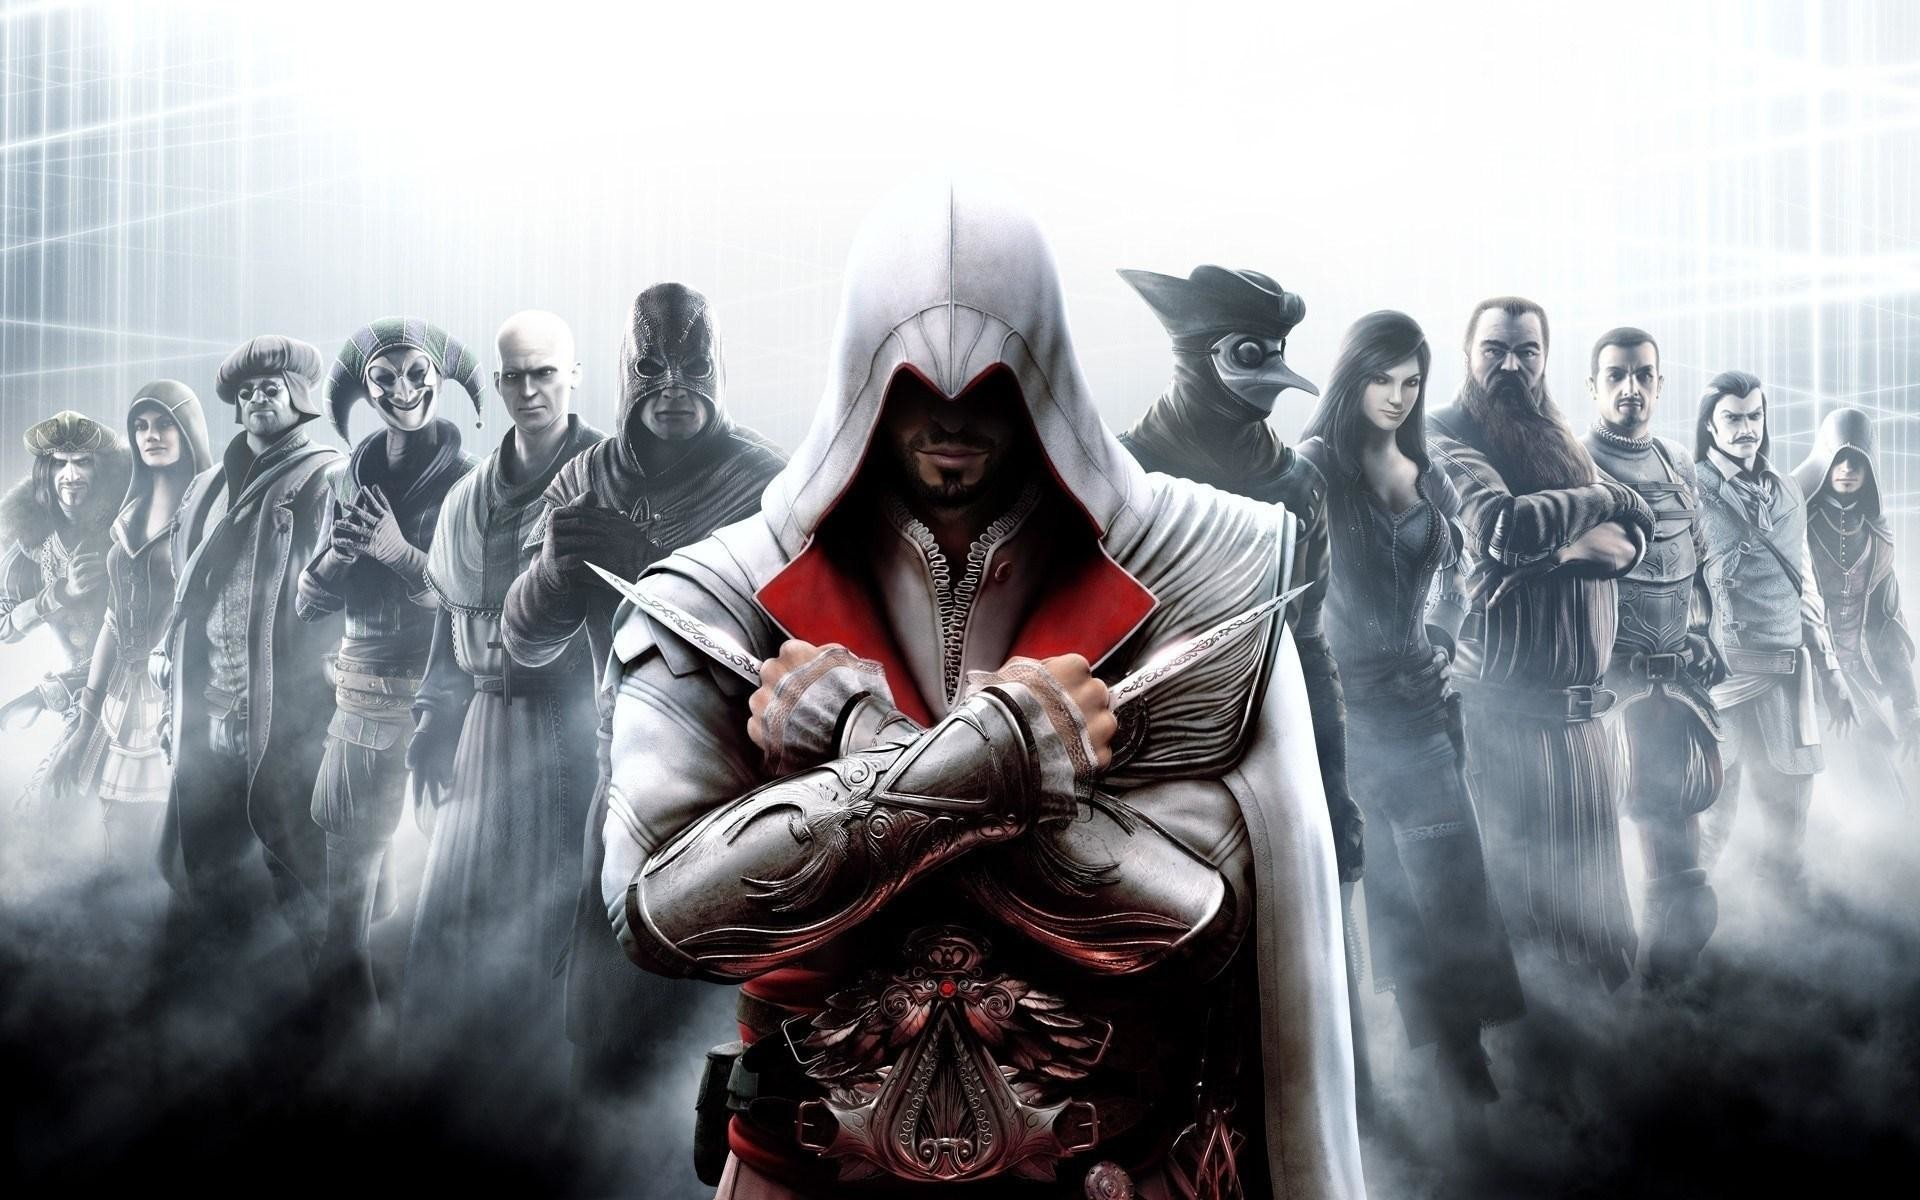 1920x1200 Assassins Creed Brotherhood All Characters Game Hd Wallpaper